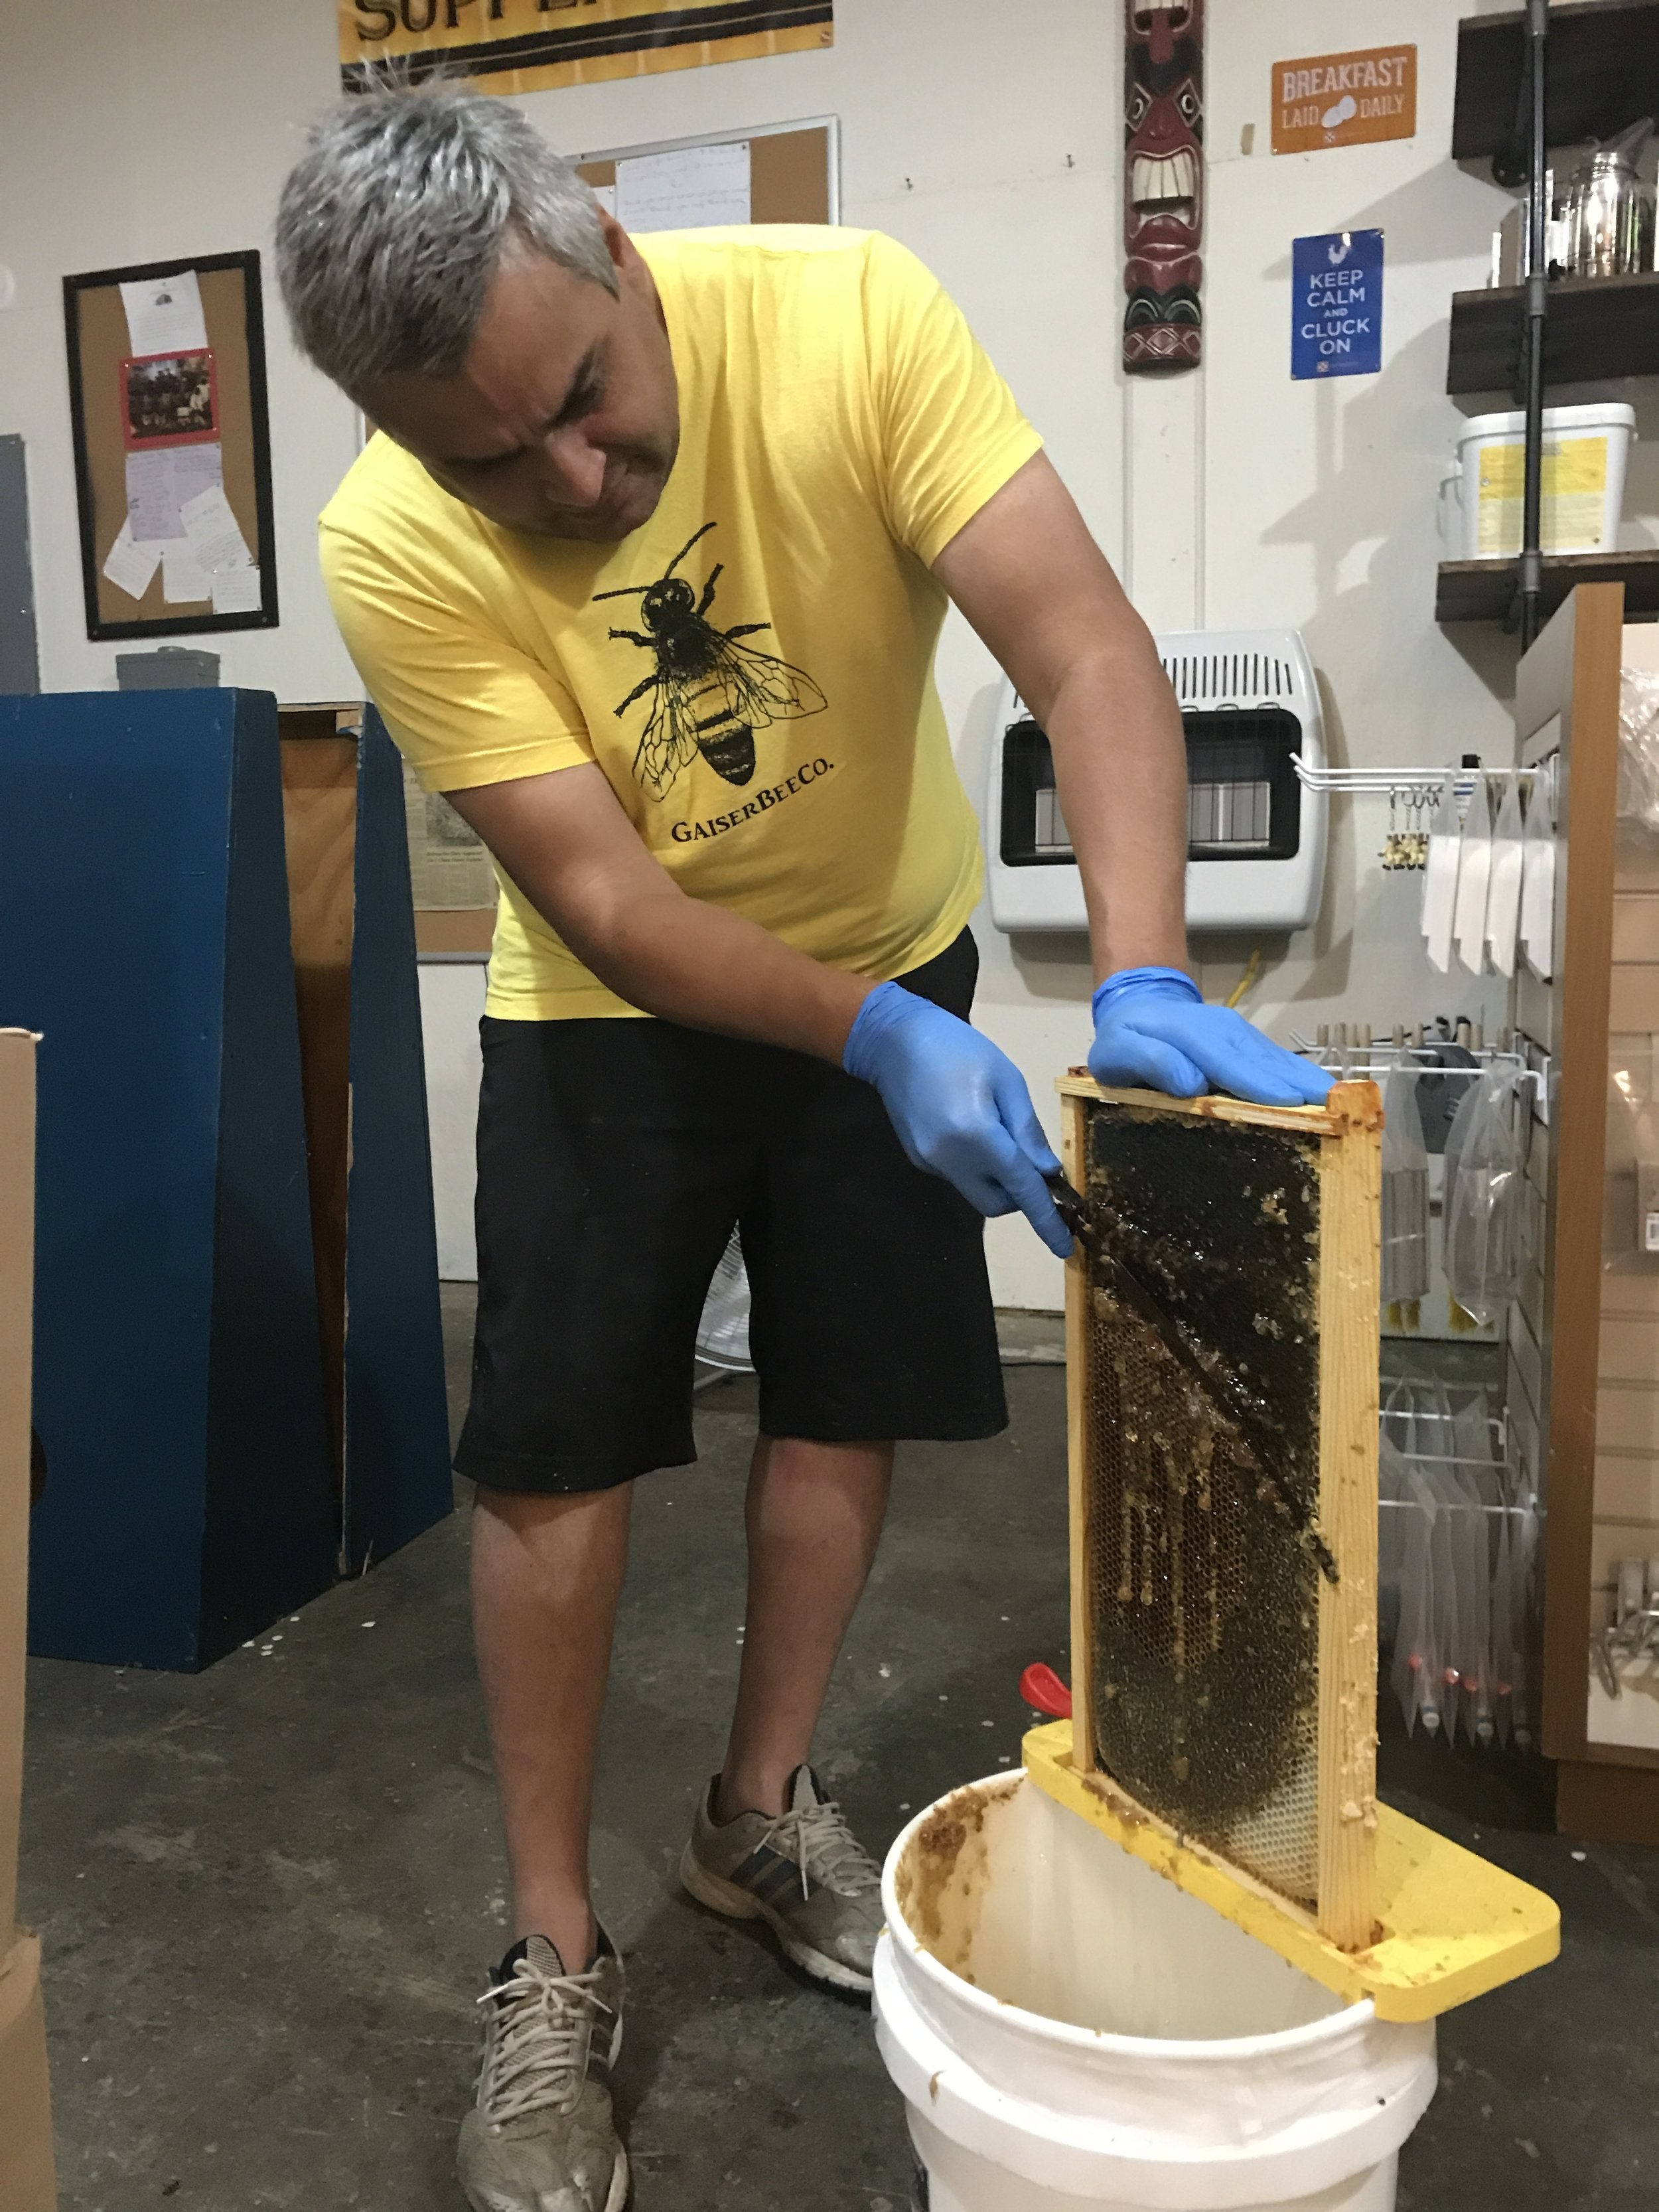 Extracting Host A Hive Gaiser Bee Co.